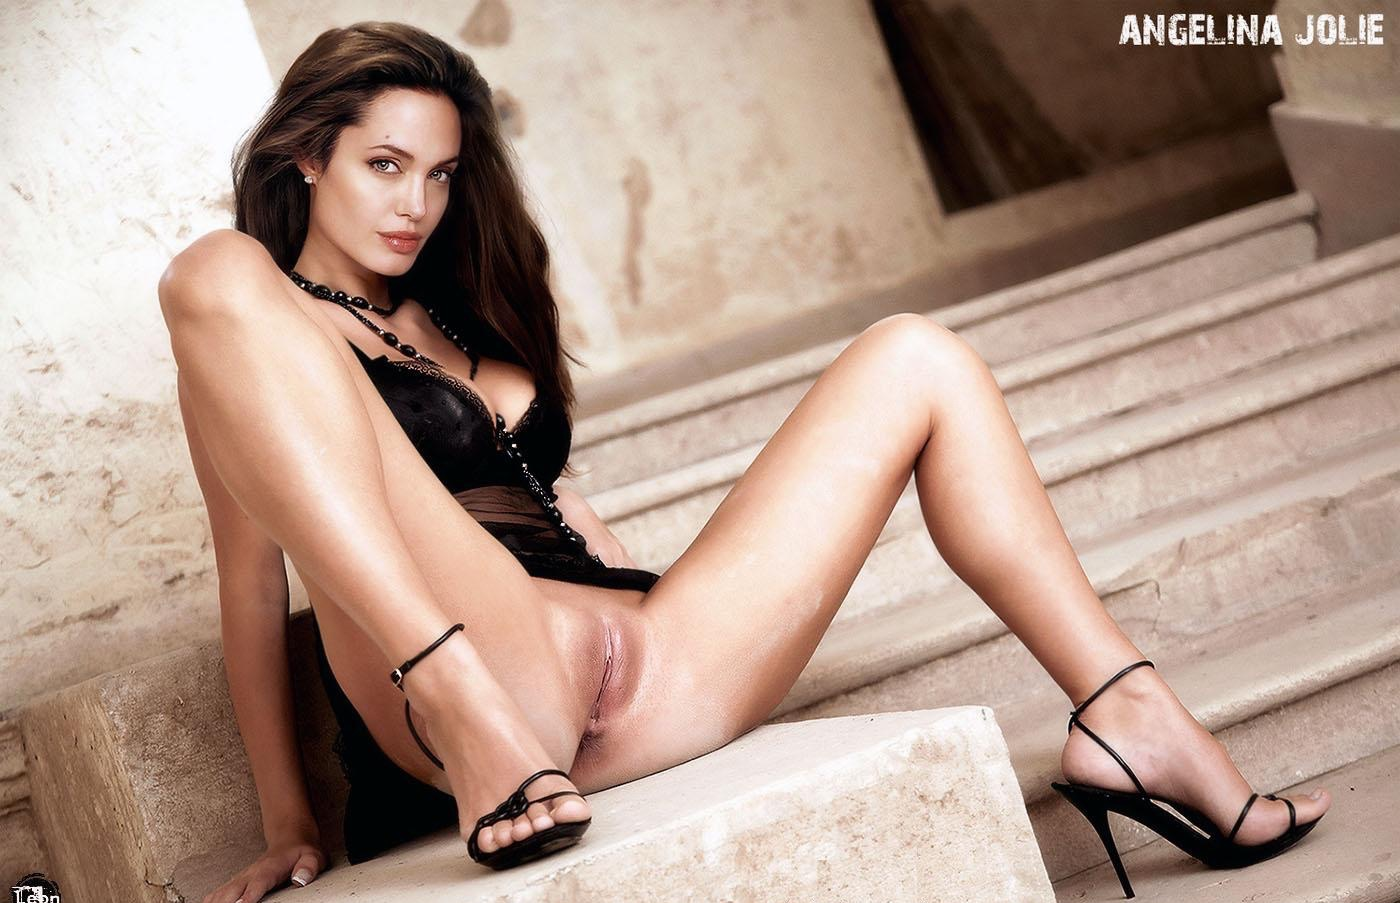 Angelina Jolie Nude Naked Xxx Sex Best Fake Photos 67 Pics-9677